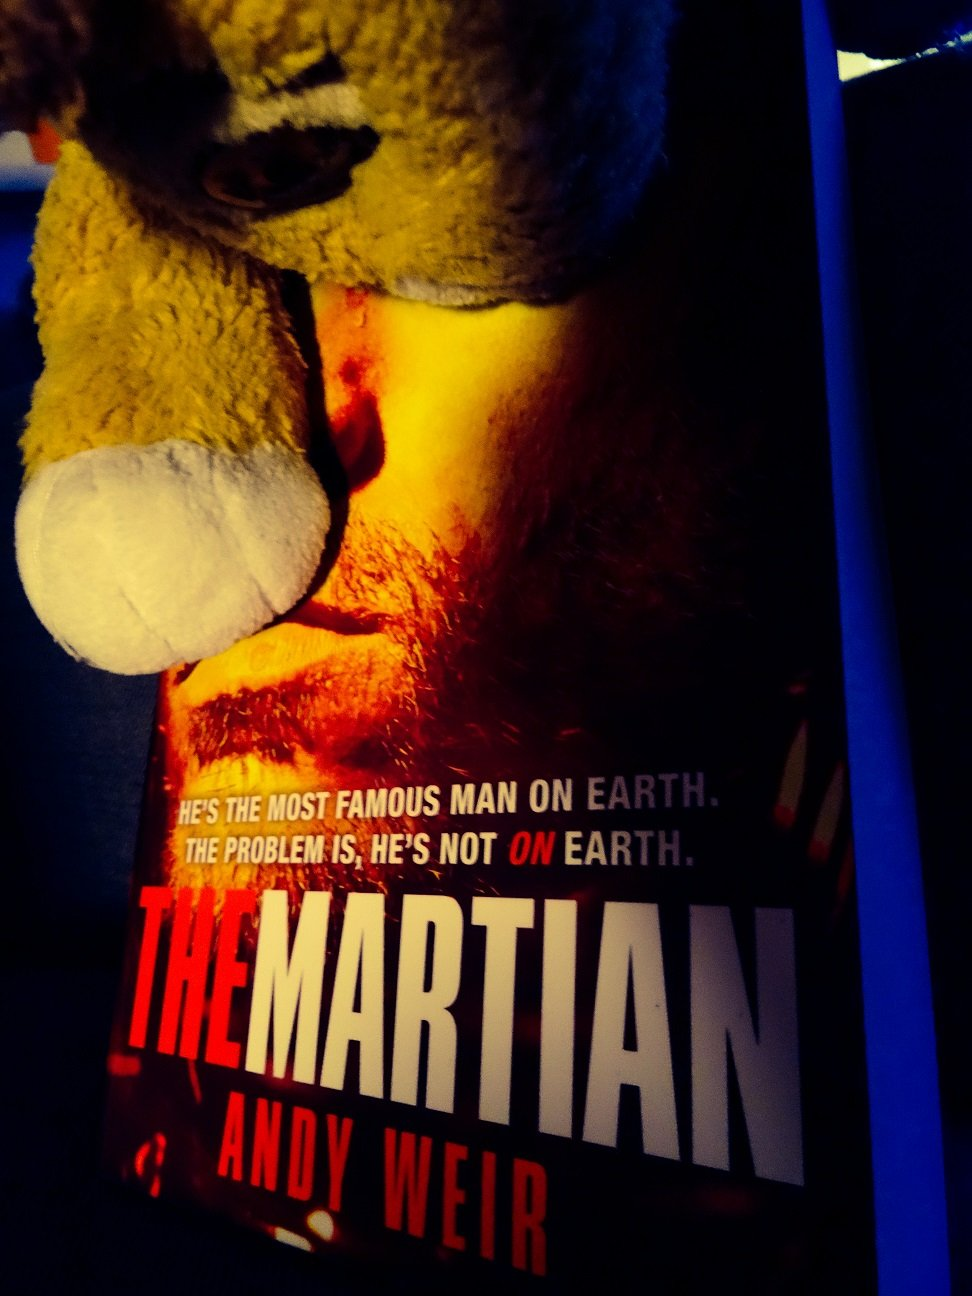 """The Martian"" by Andy Weir"